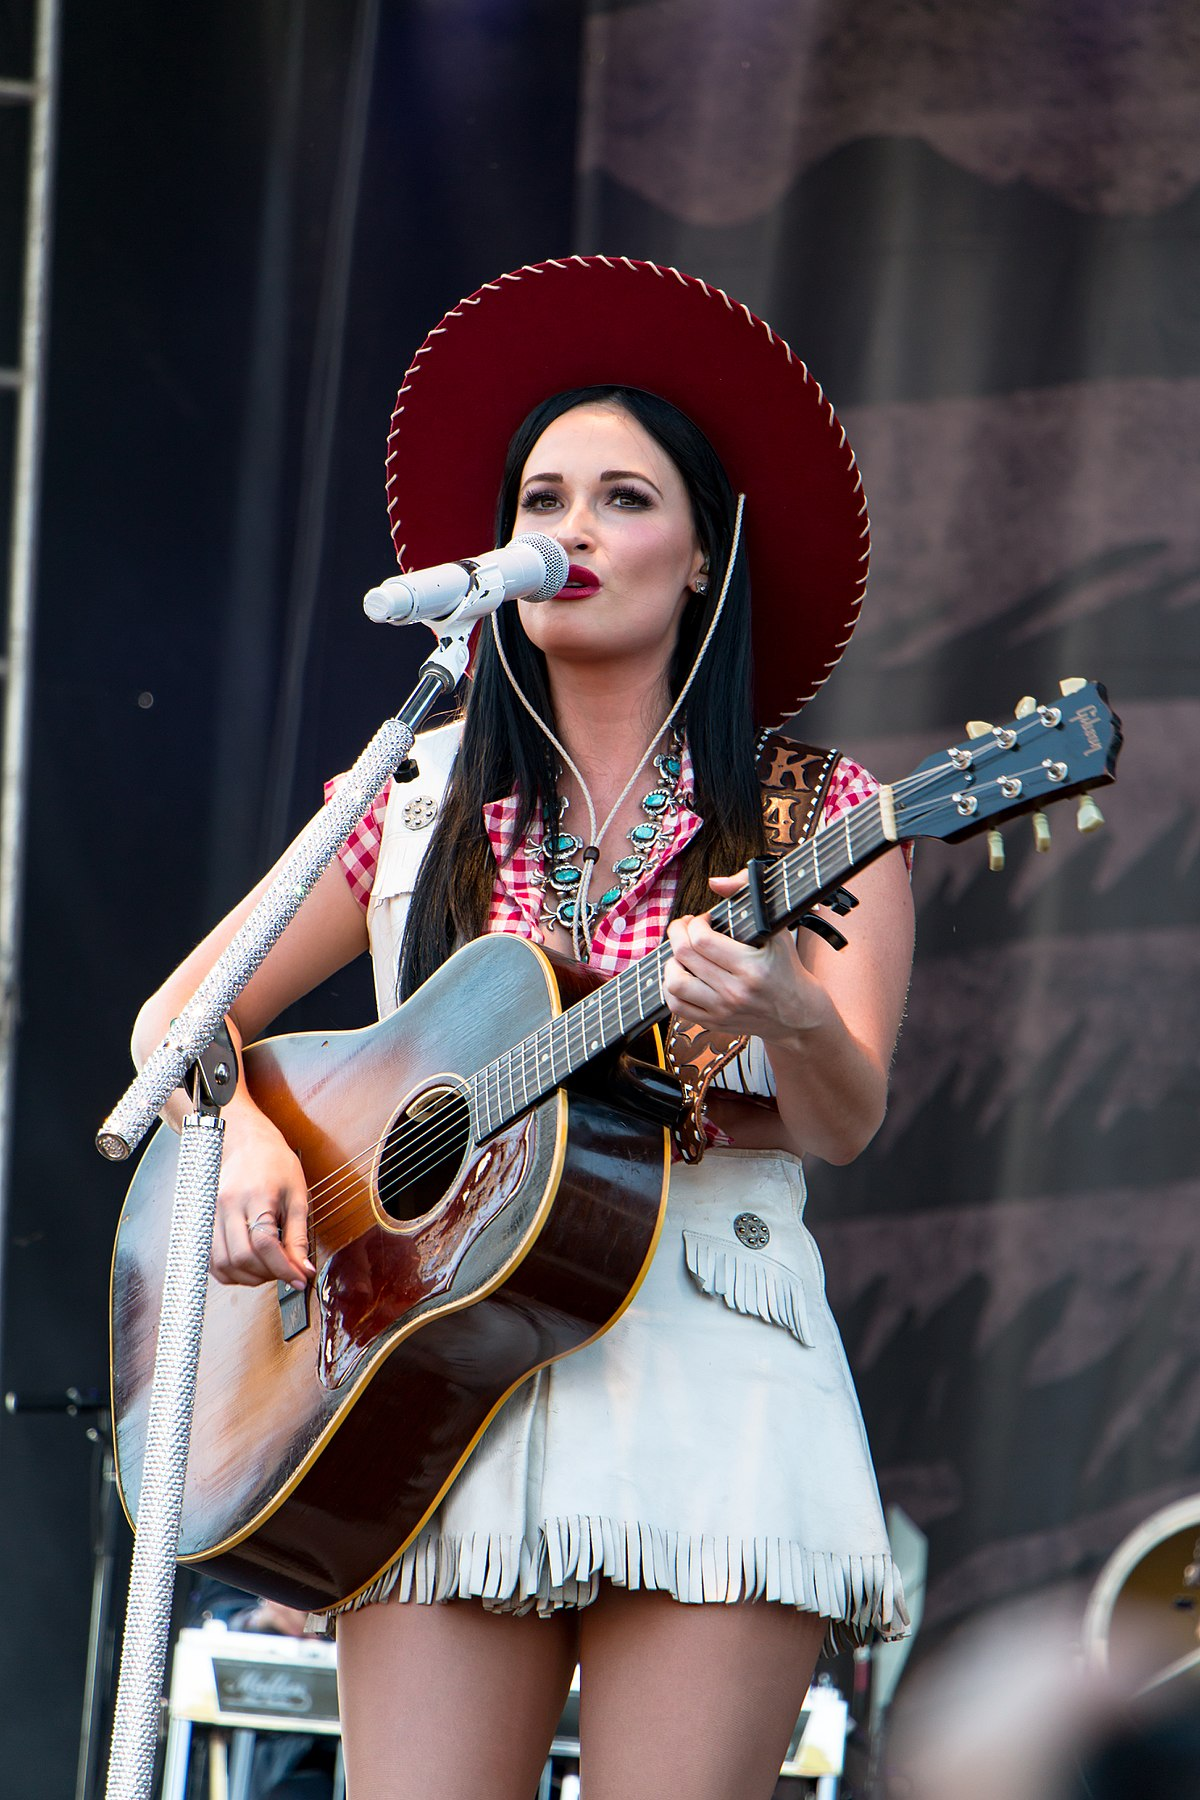 Kacey_Musgraves on Christmas Songs